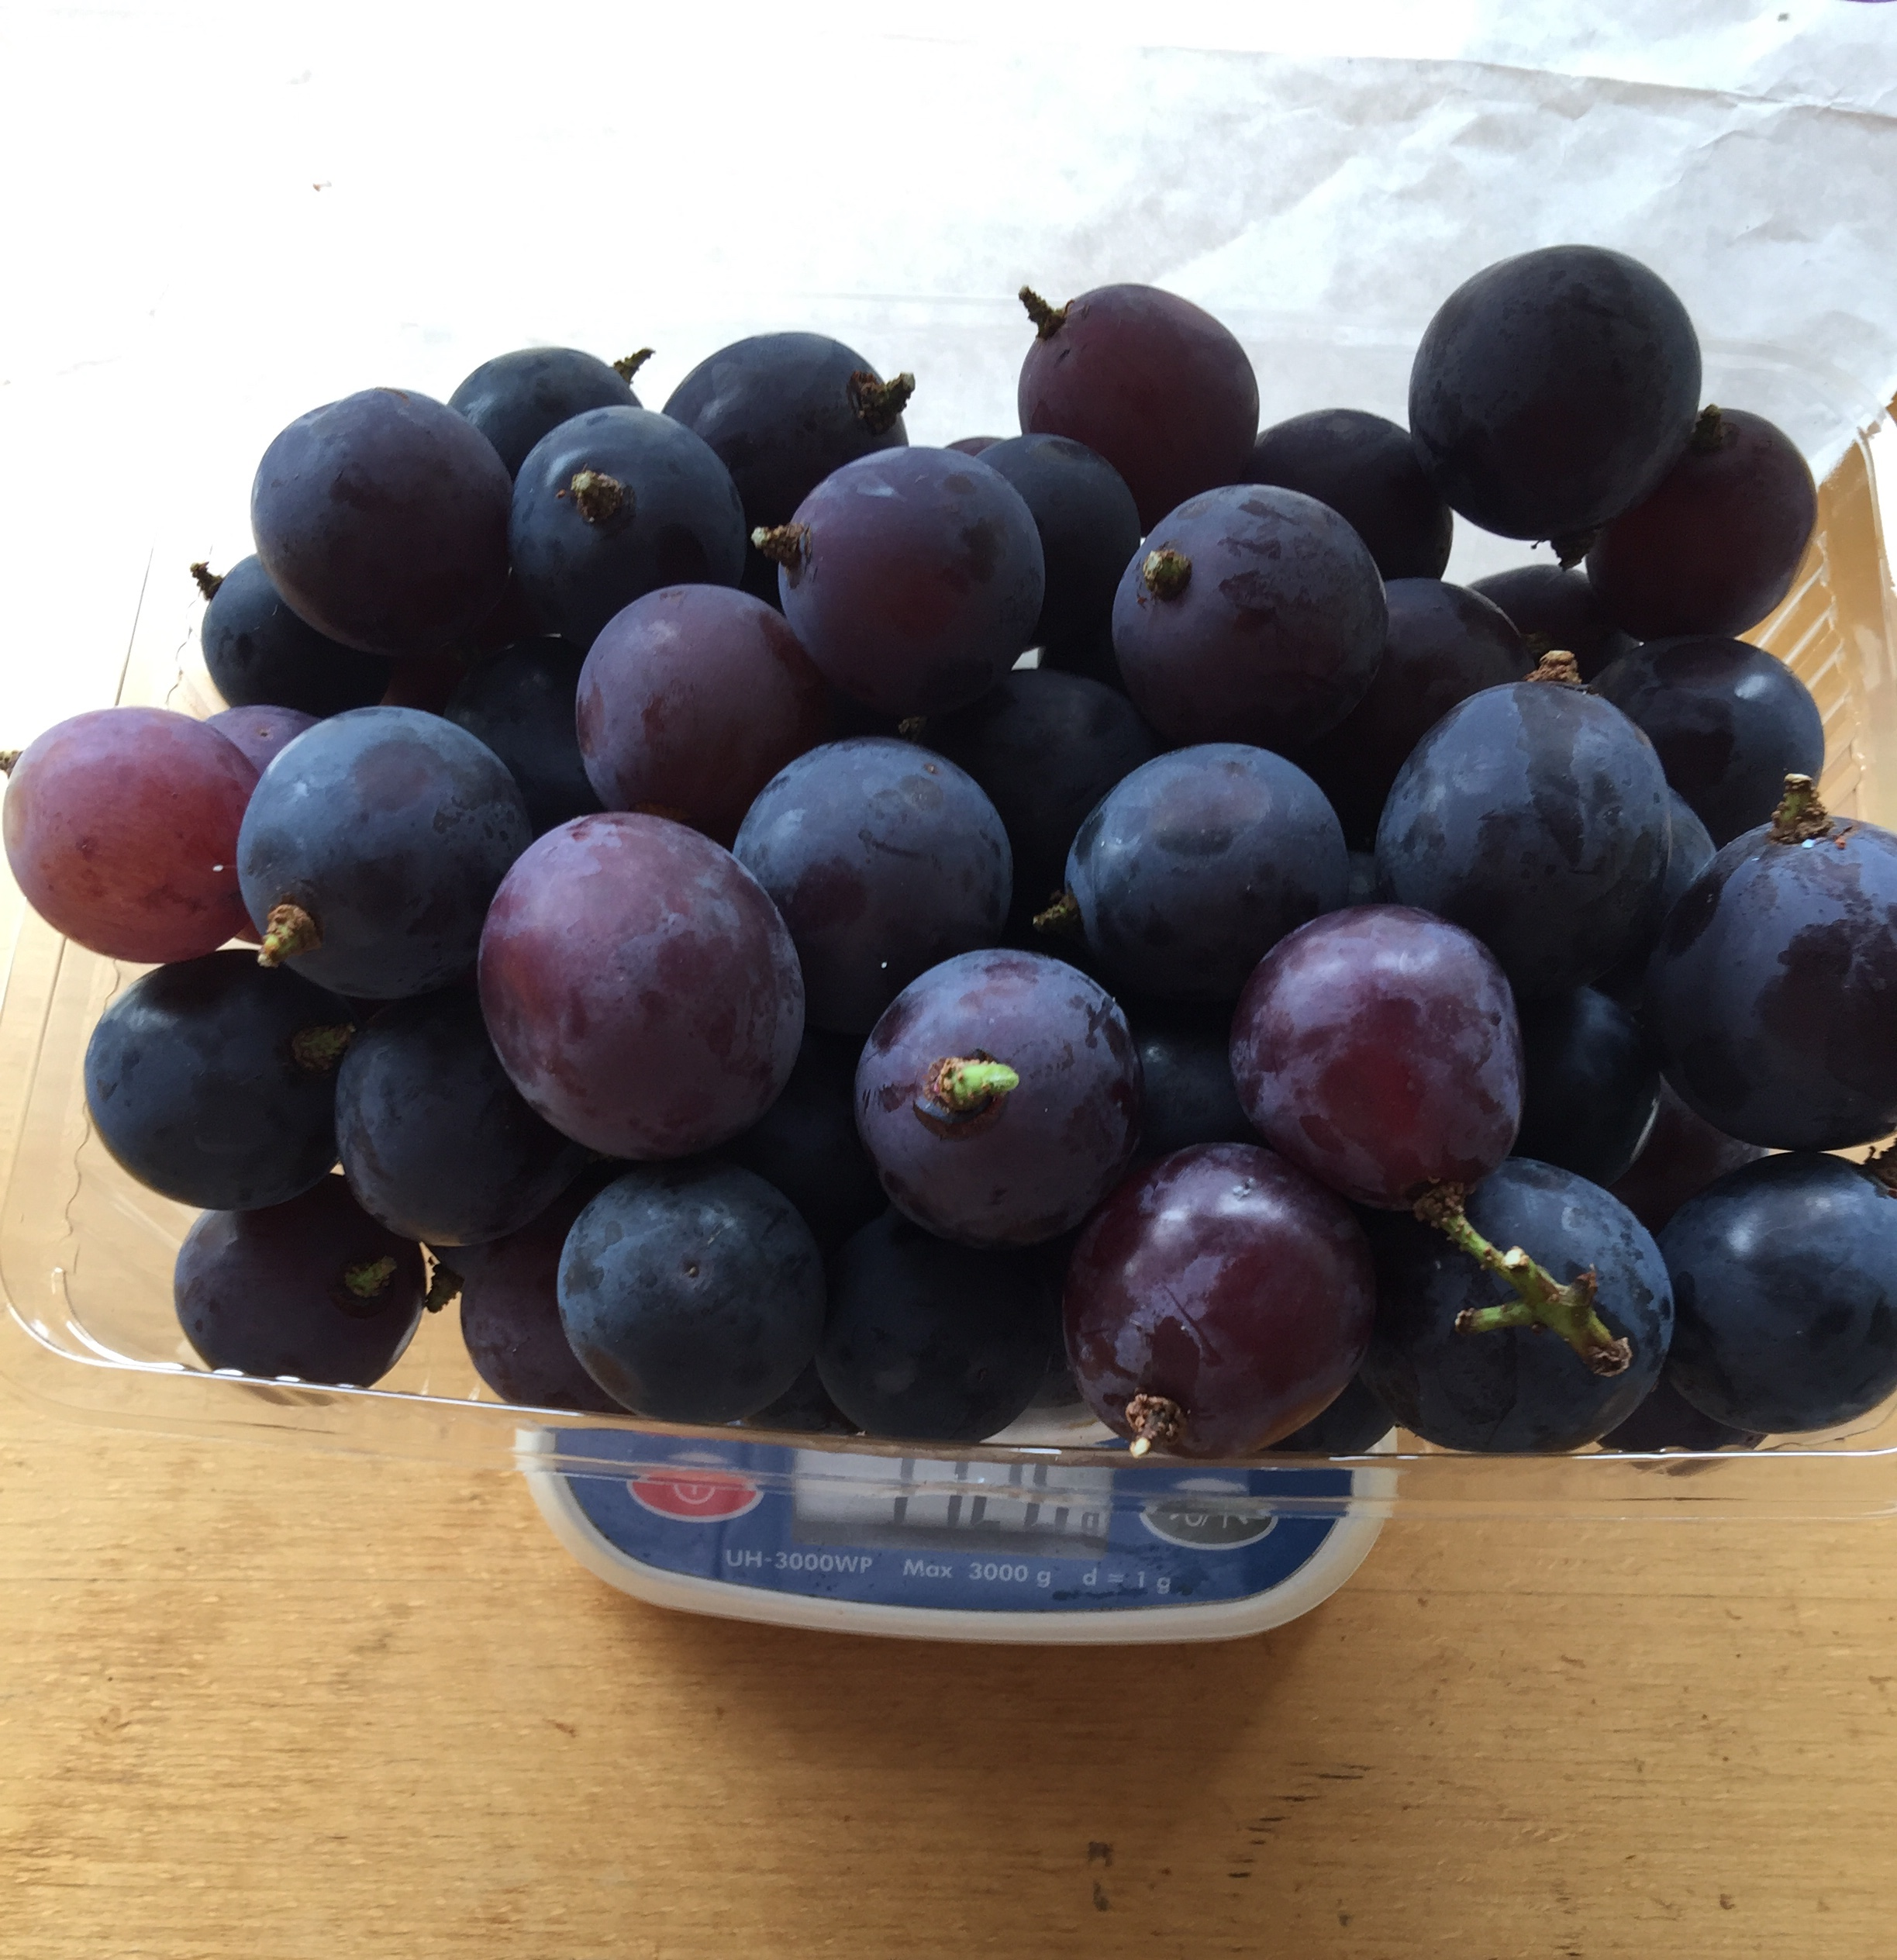 baker's special- Pione grapes not organic 1 kilo!